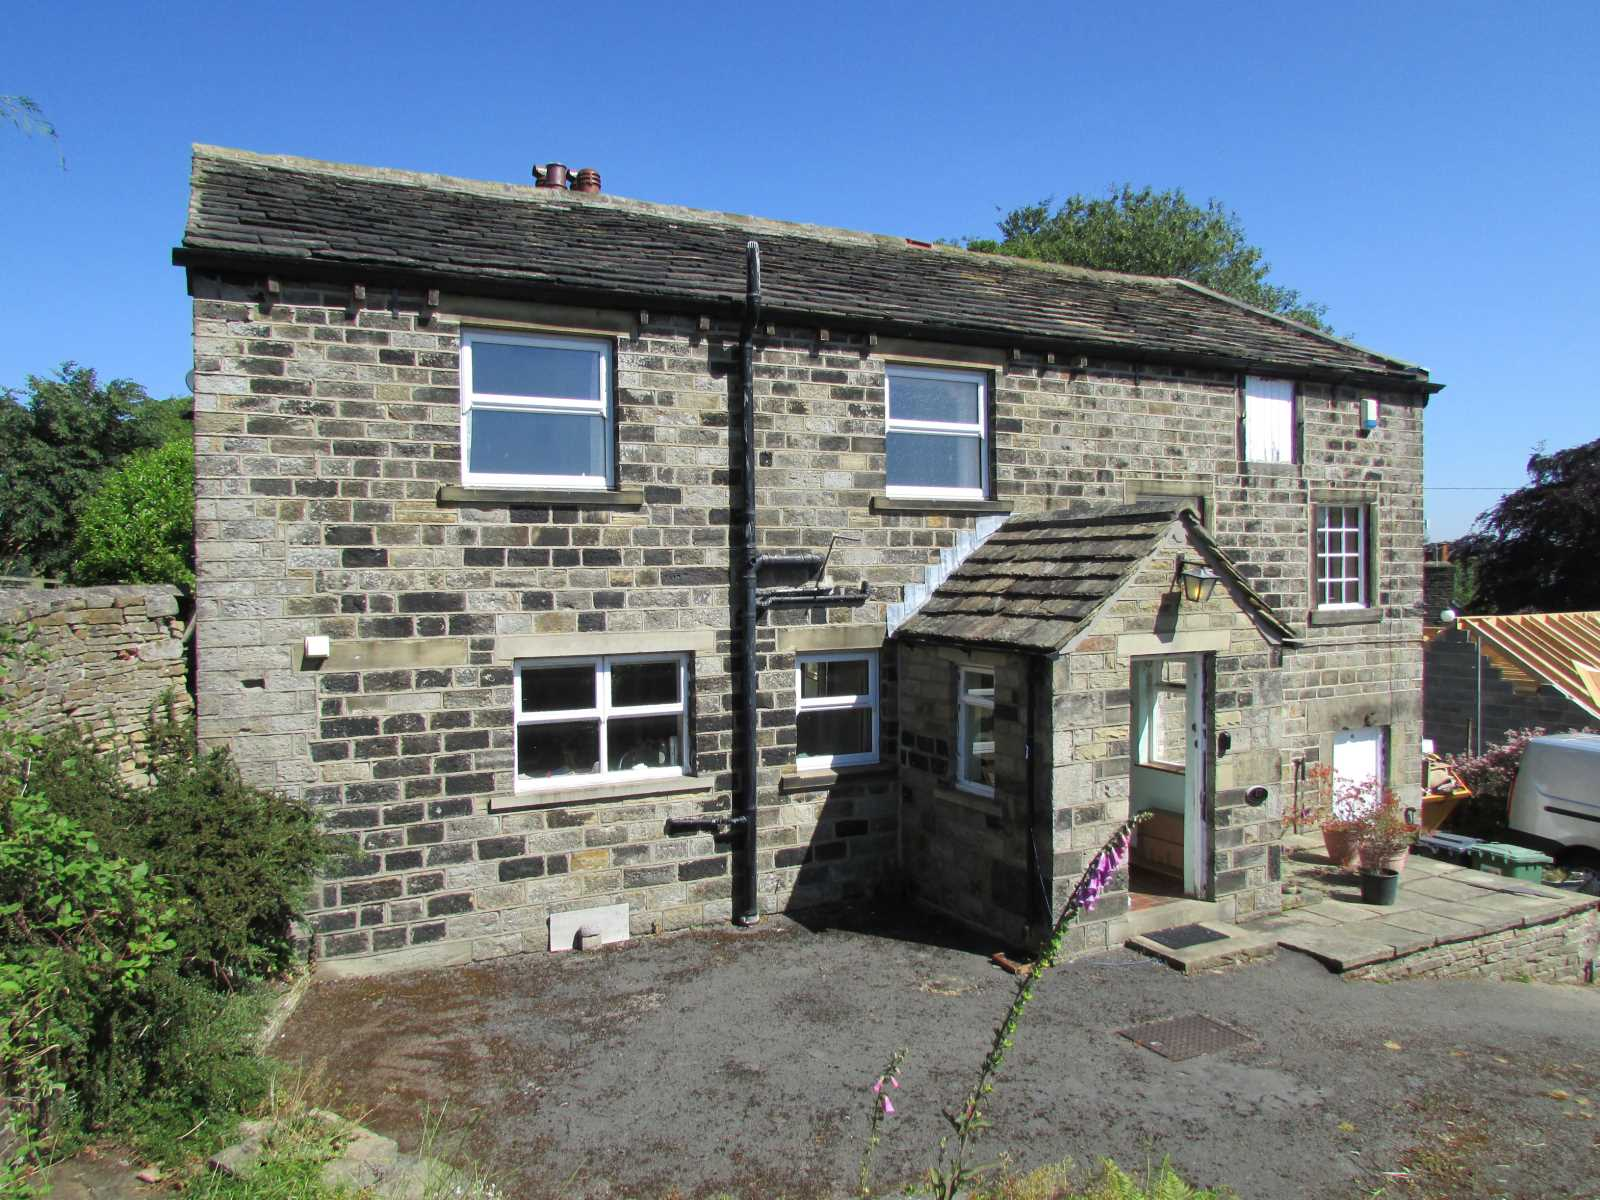 Wellgate 17 Hill, Holmfirth, HD9 3BN